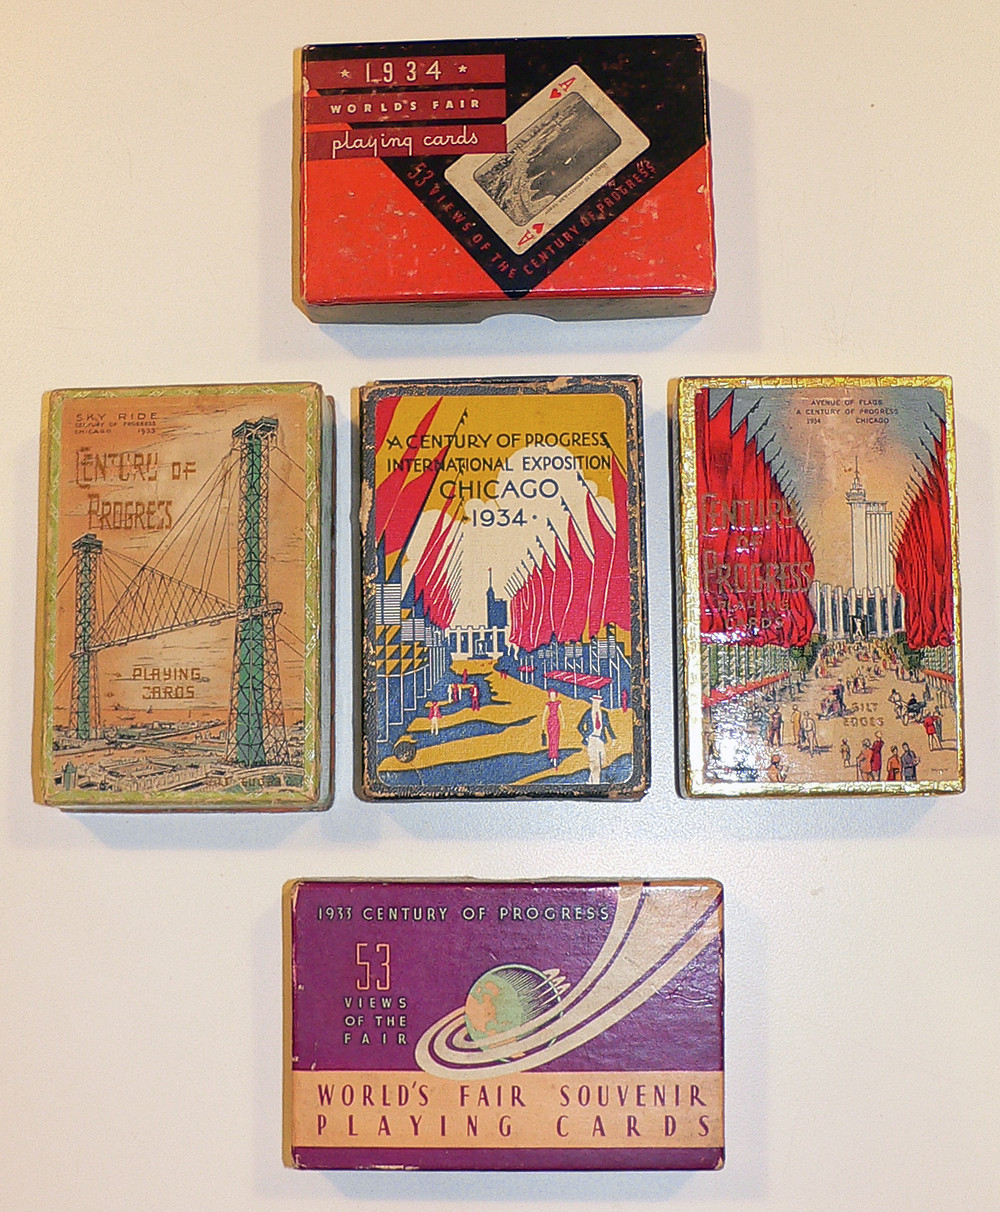 Assorted playing cards. Most card sets included pictures/scenes of the fair on each and every card.